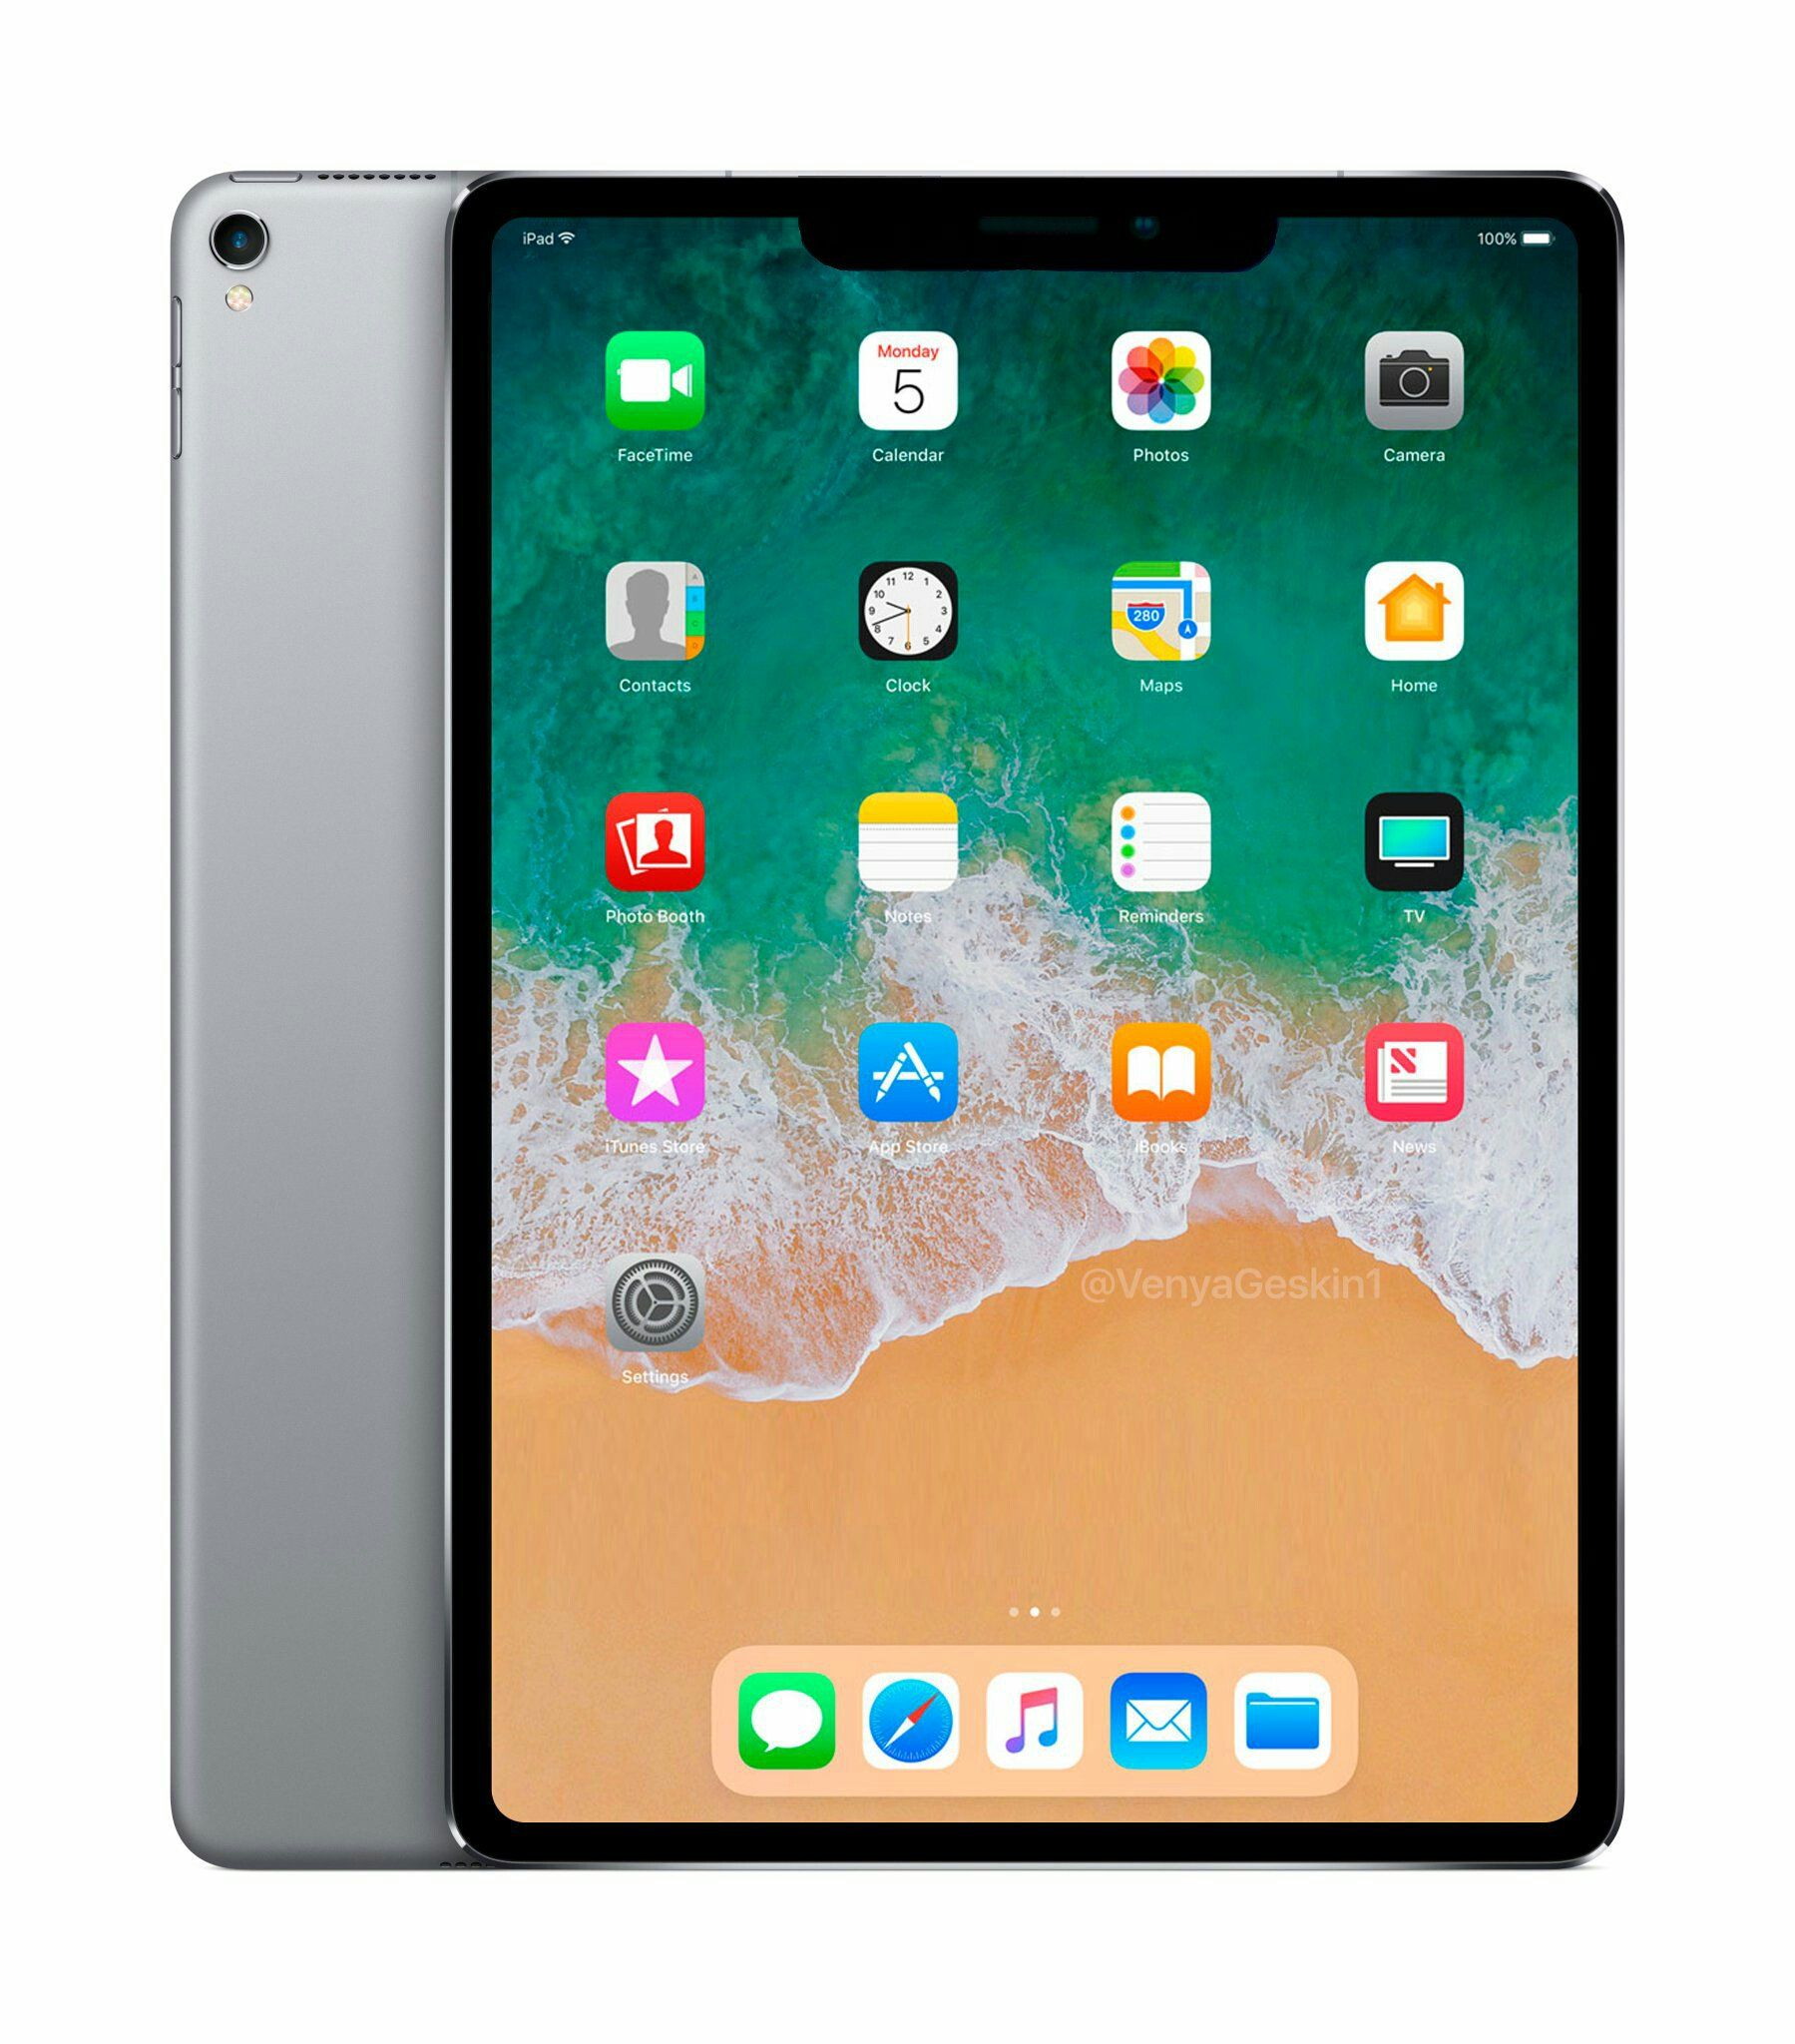 ipad-pro-with-face-id-could-launch-during-wwdc-2018-hopefully-without-a-notch-520119-3